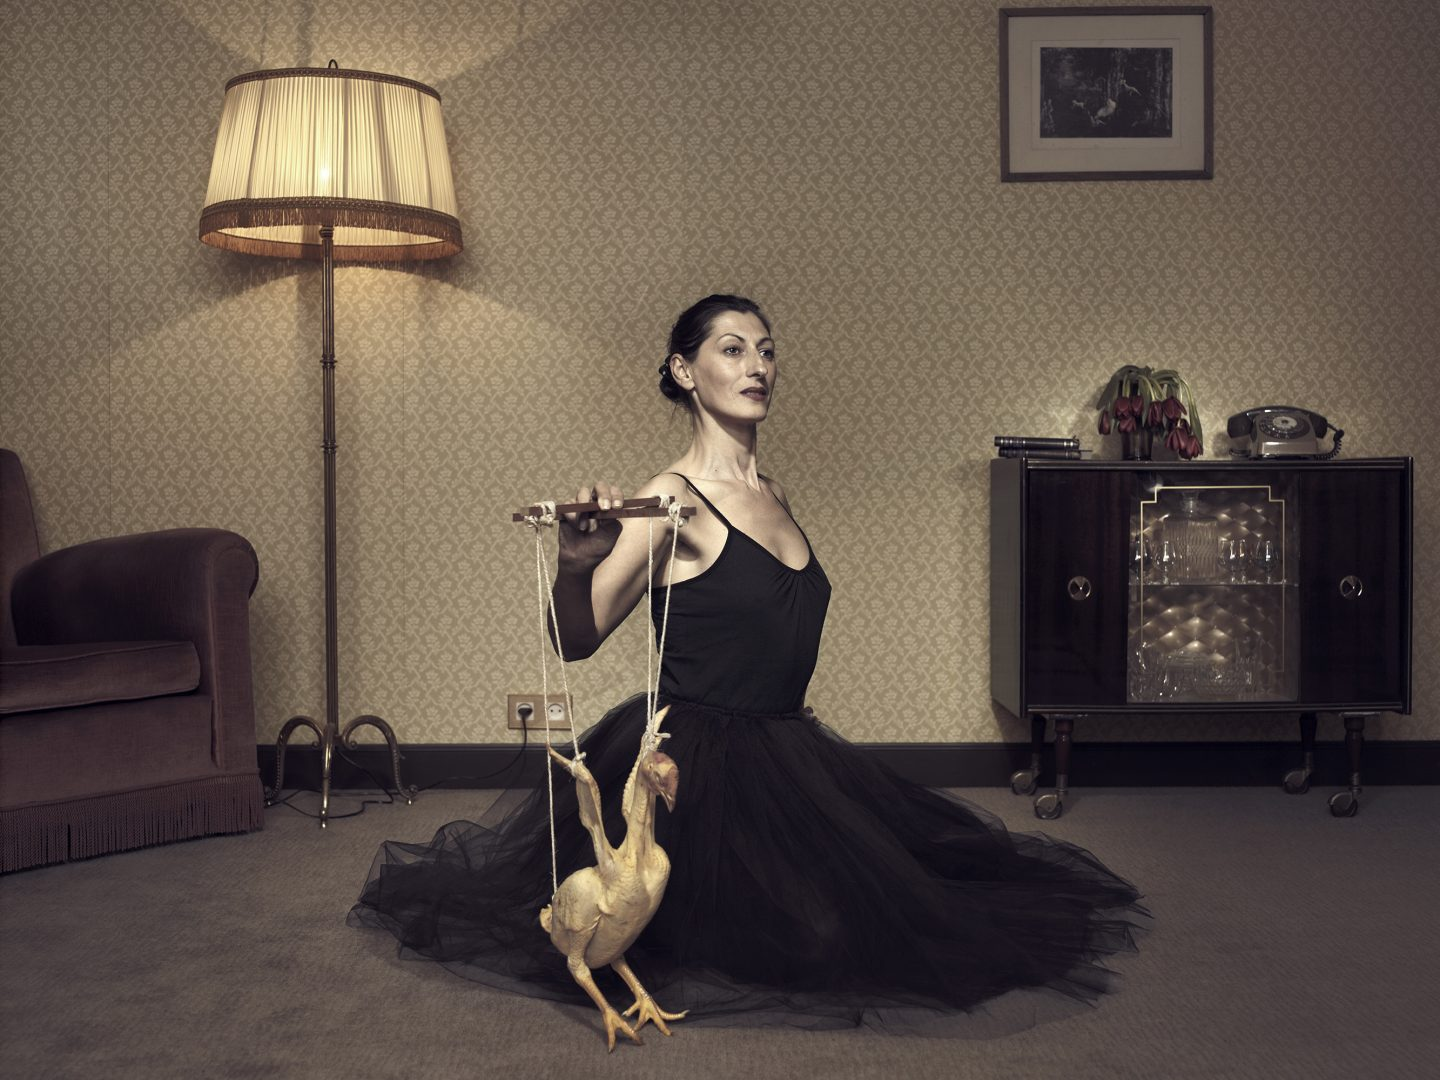 Woman playing with chicken in room 42 by Stefan Rappo